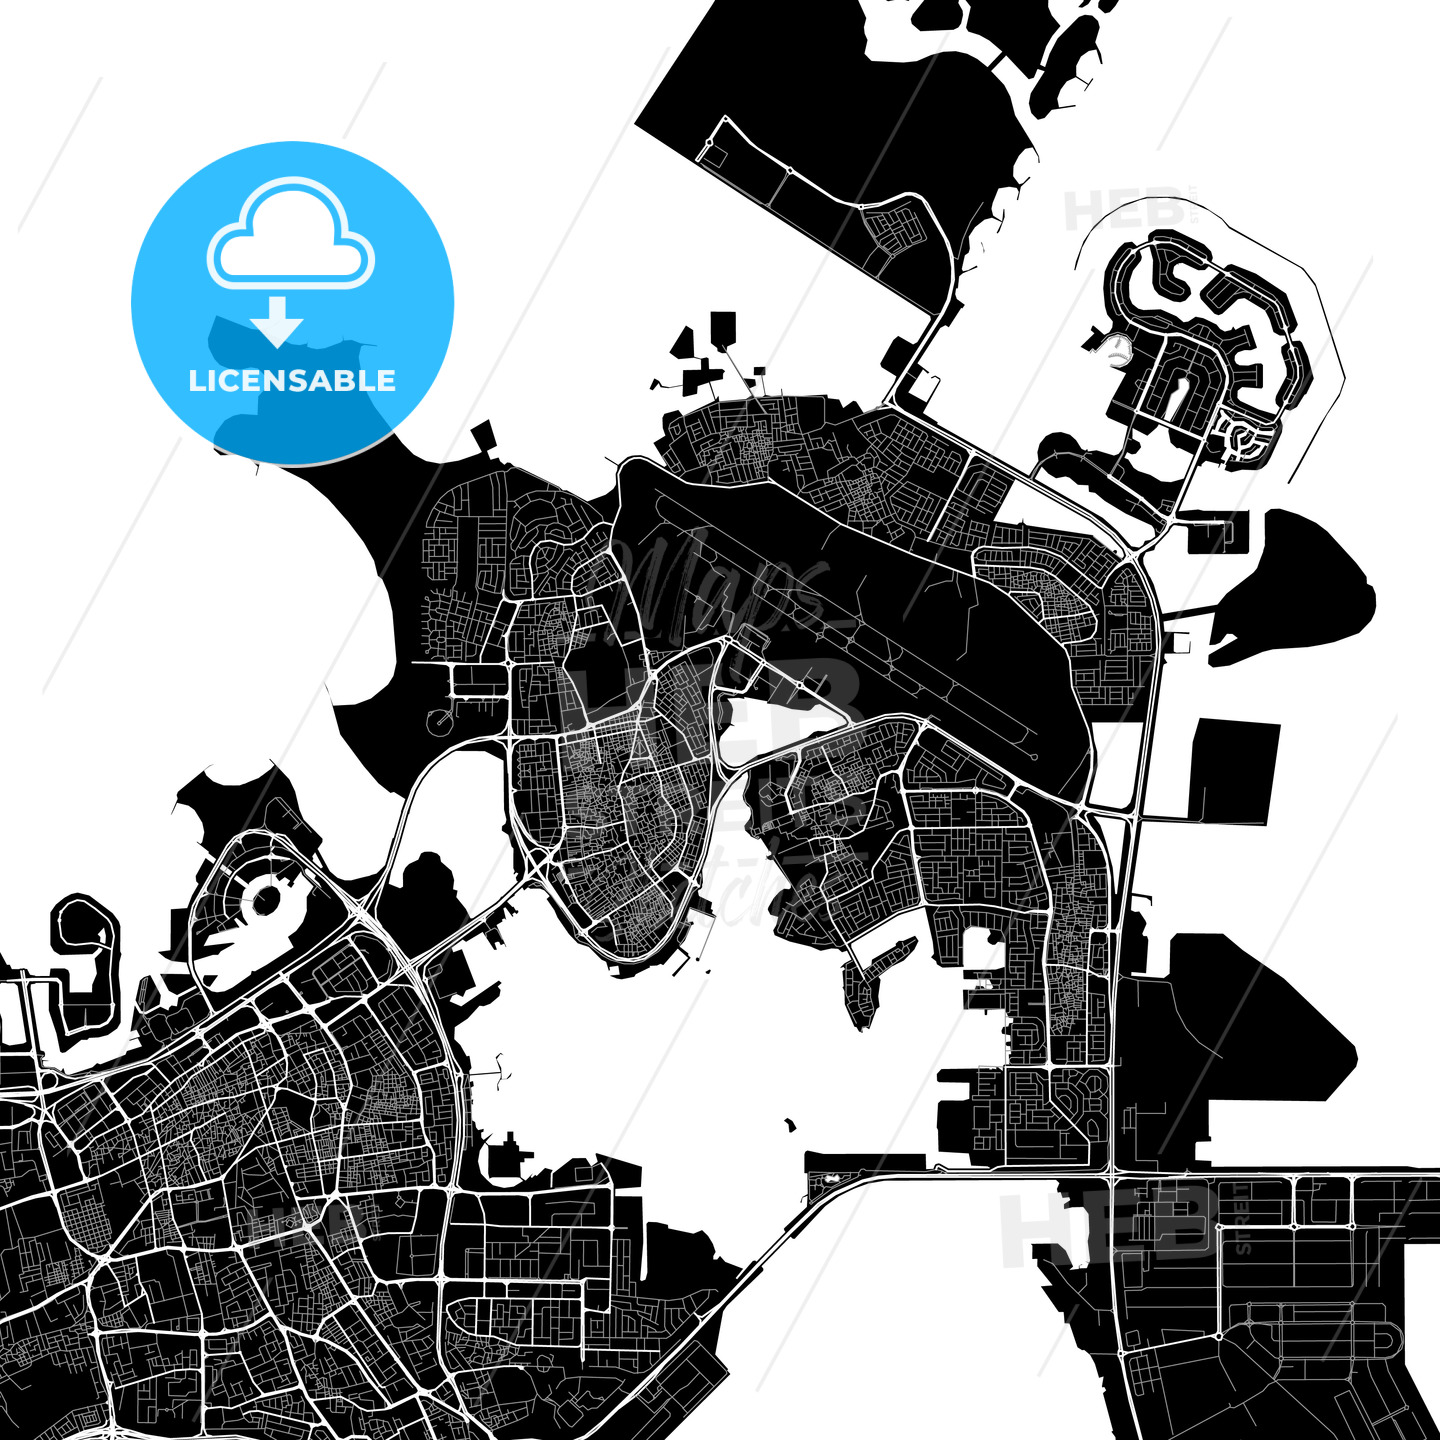 Black and White Area Map of Al Muharraq, Muharraq, Bahrain - HEBSTREITS